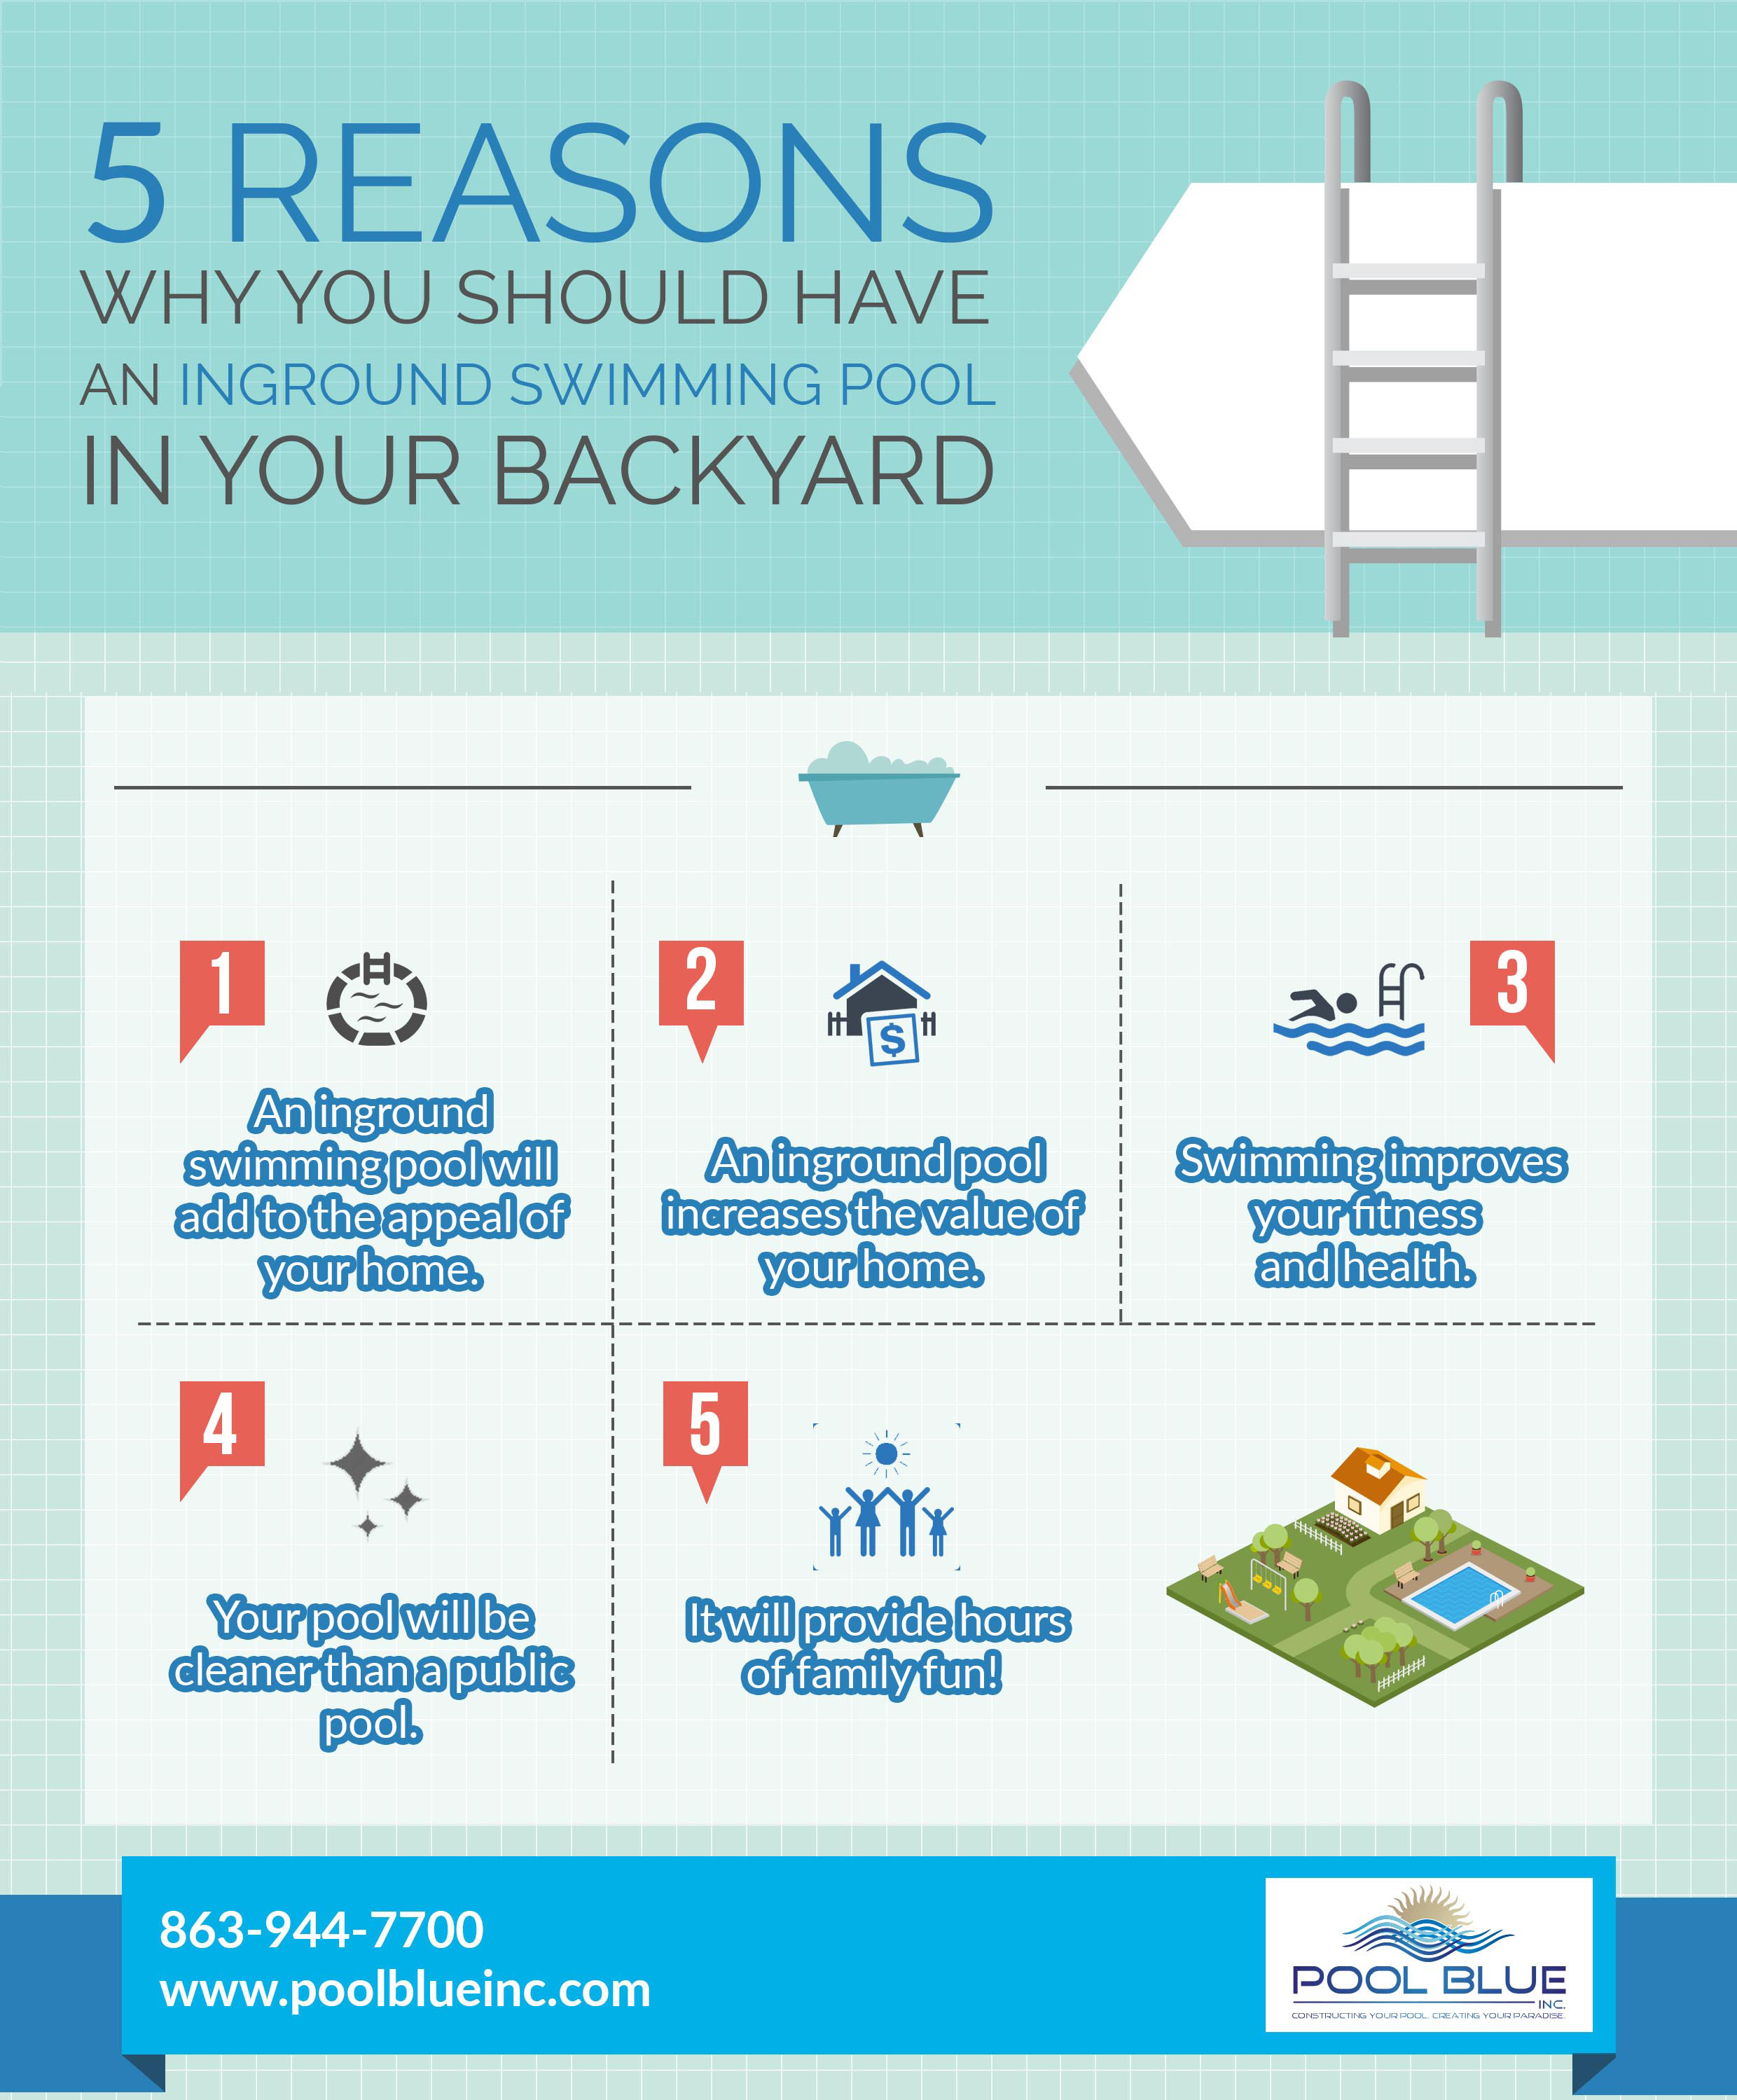 5 Reasons Why You Should Have an Inground Swimming Pool Installed in Your Backyard